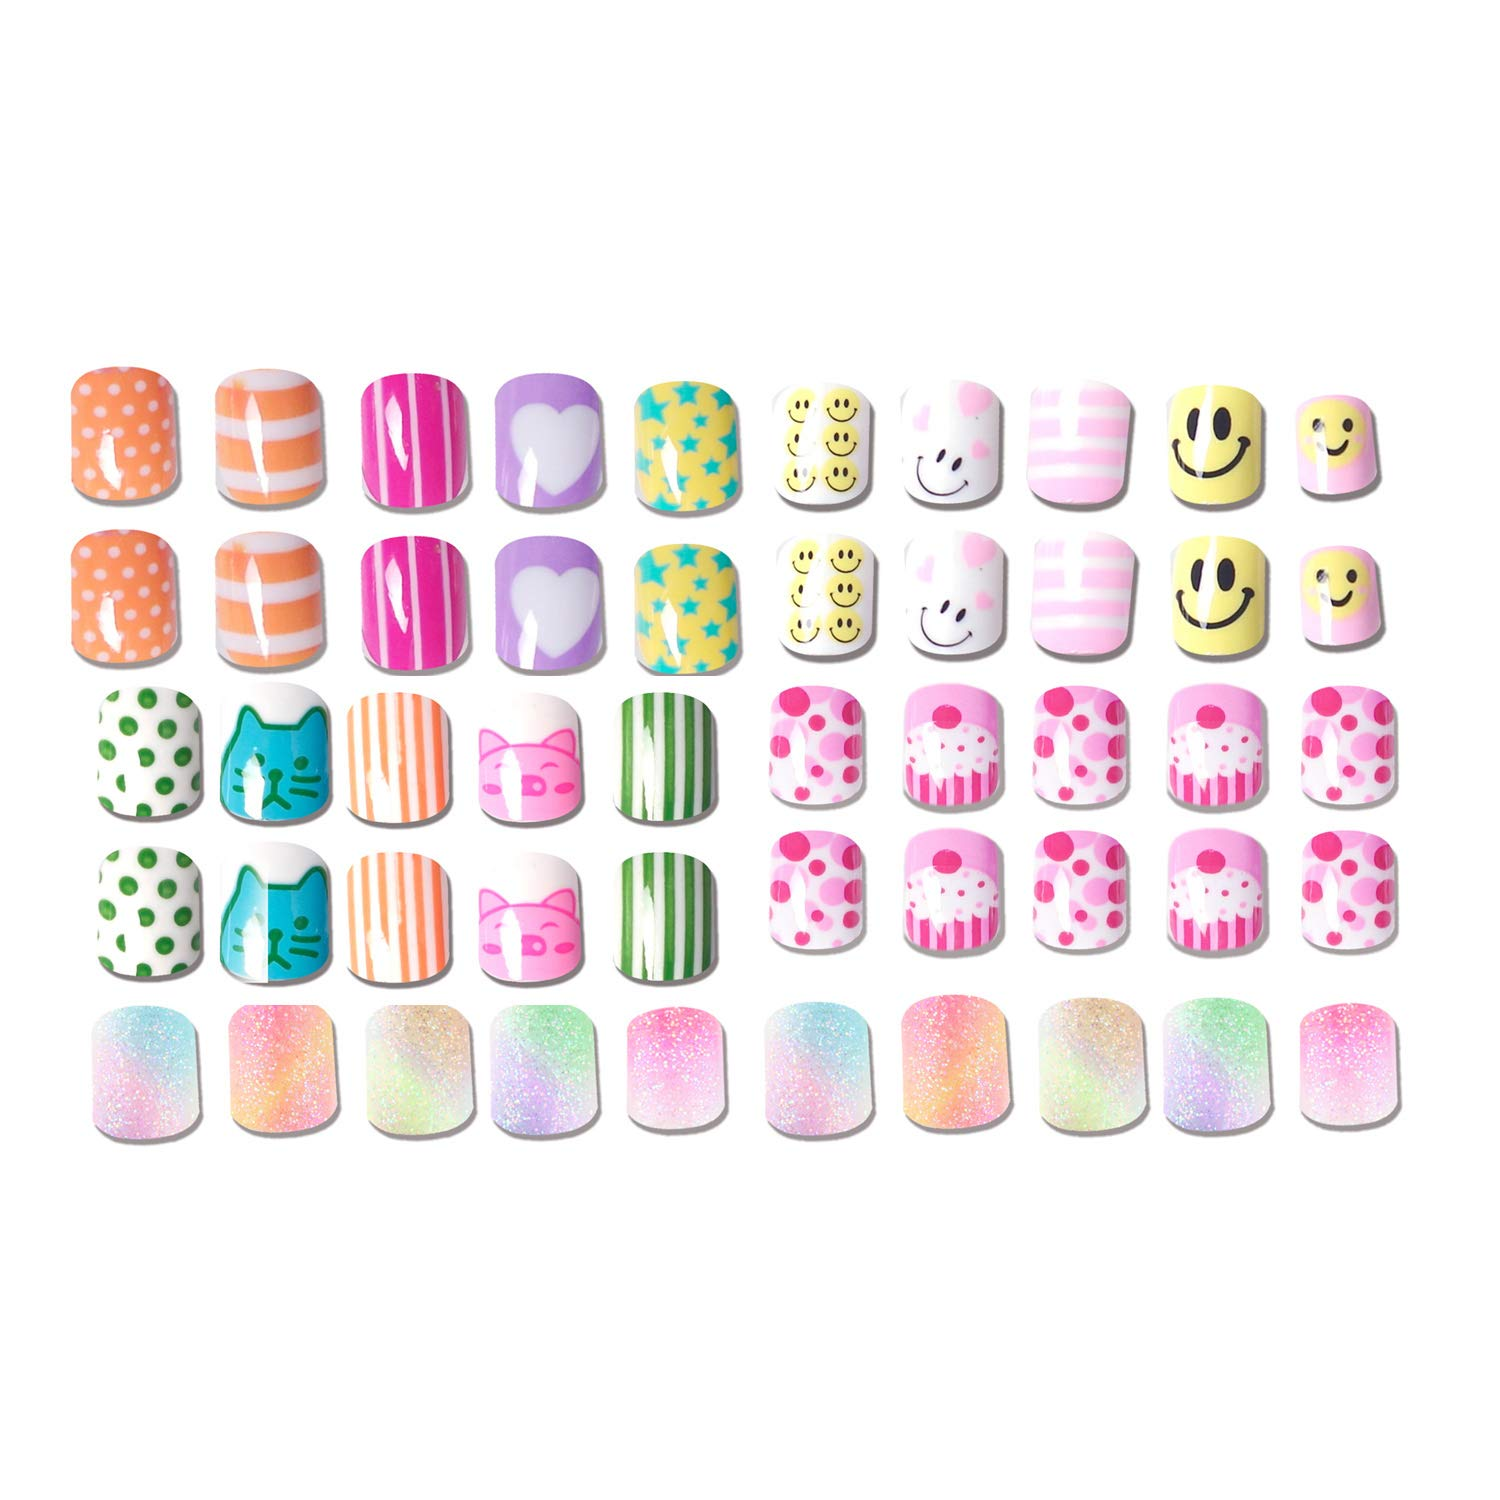 120 pcs 5 Pack Children Nails Press on Pre-glue Full Cover Glitter Gradient Color Rainbow Short False Nail Kits Great Christmas Gift for Kids Little Girls by SIUSIO